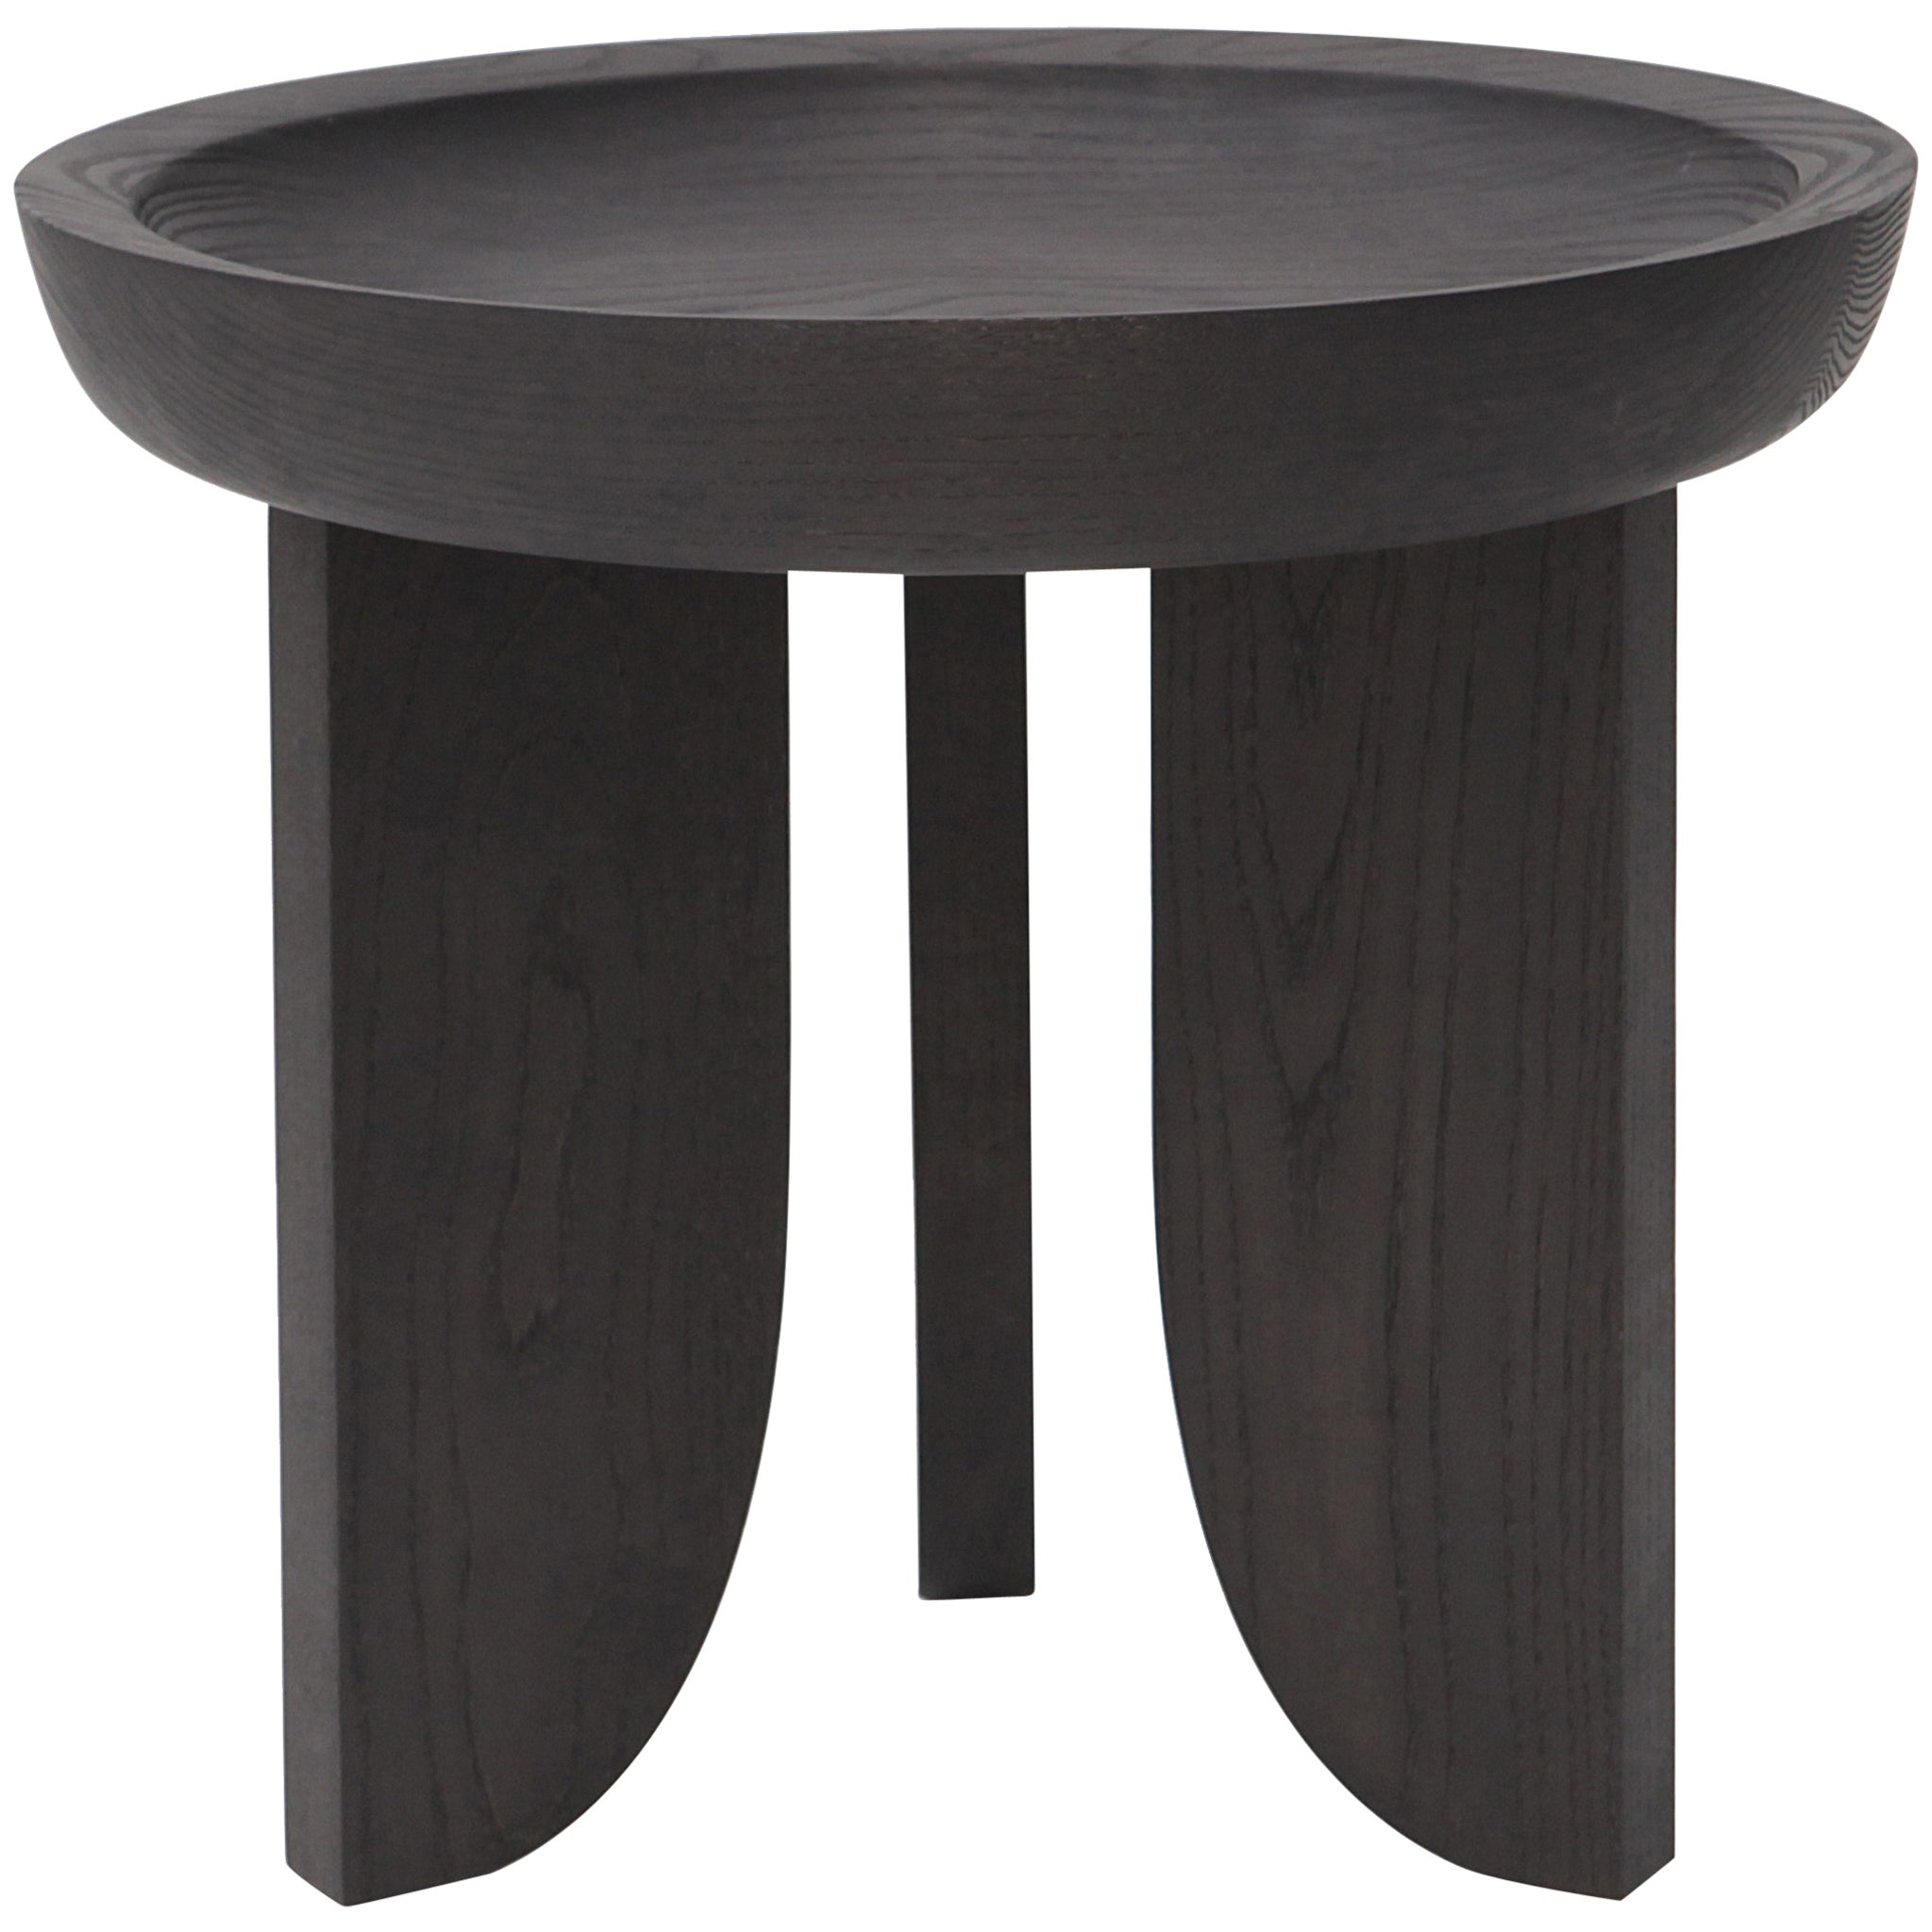 Dish Solid Wood Contemporary Sculptural Carved Side Coffee Stool Table Black